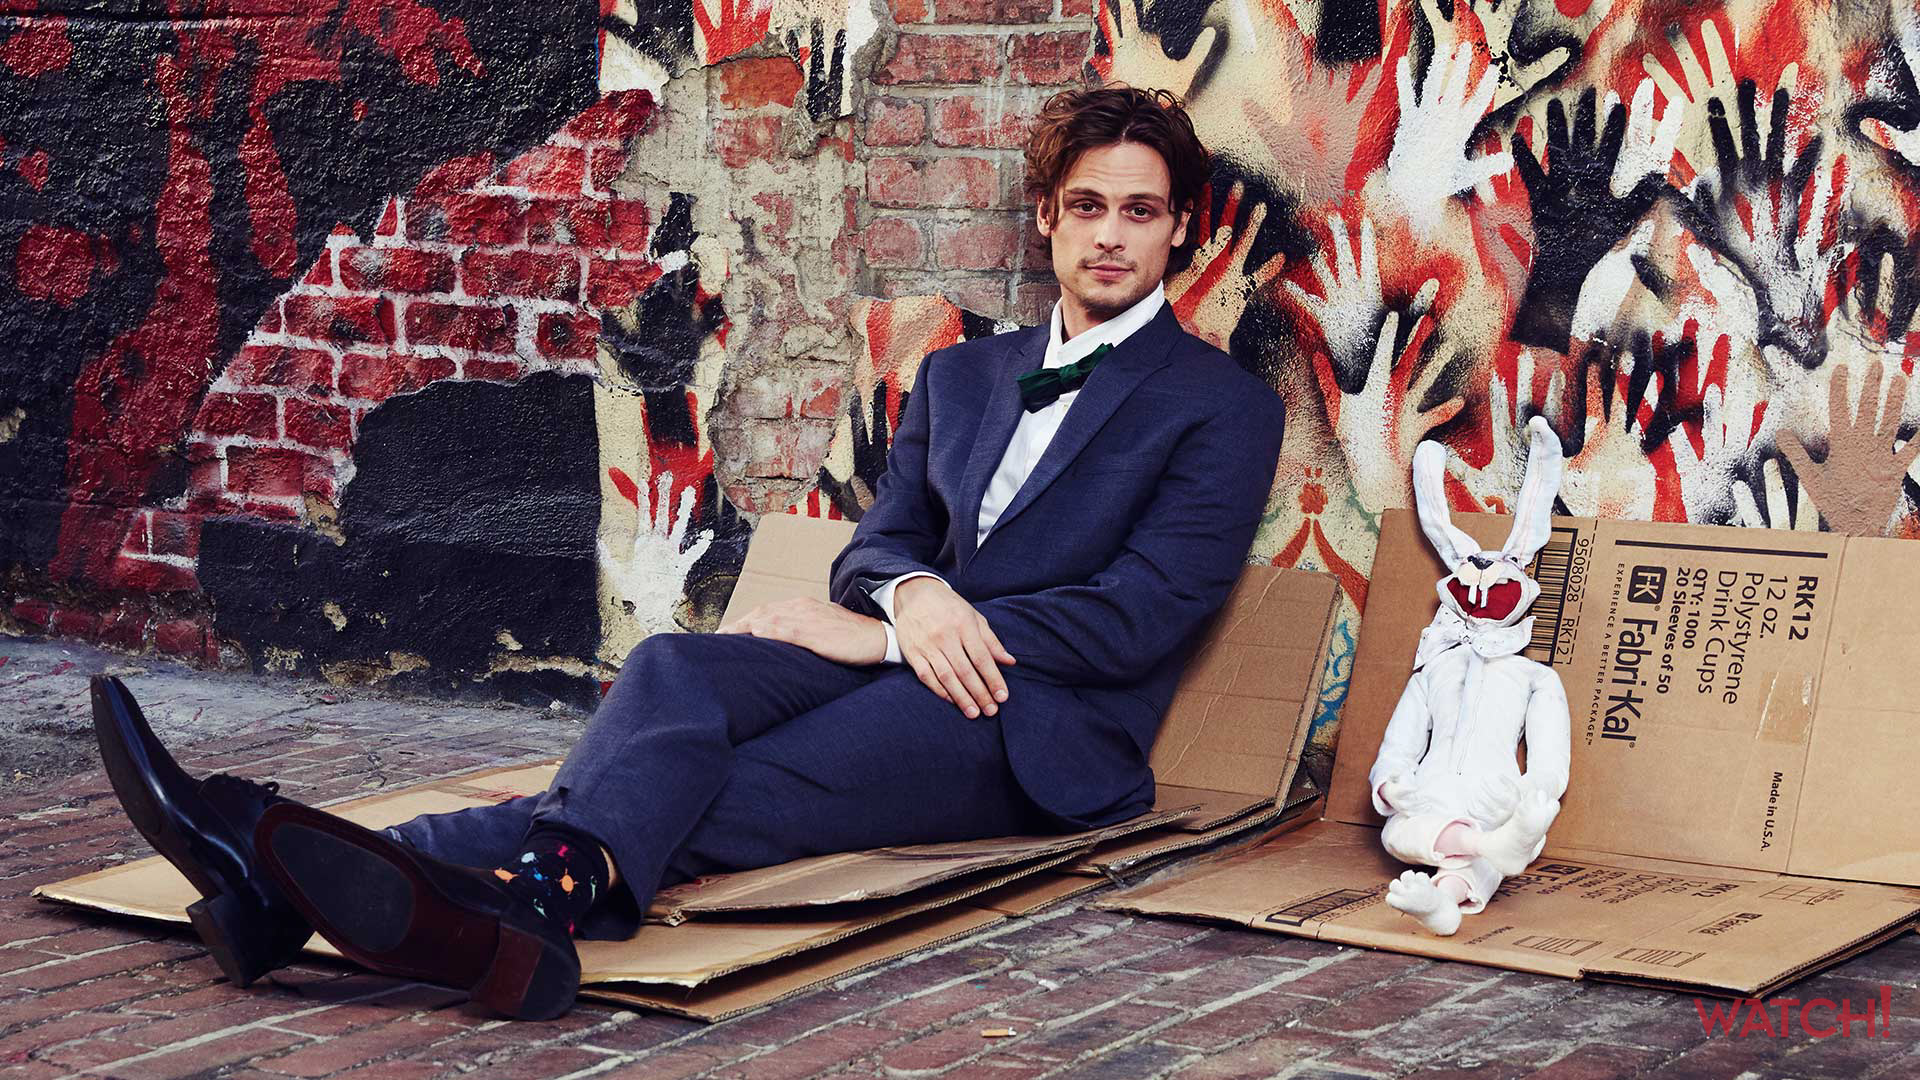 These out of the ordinary photos of Criminal Minds star Matthew Gray Gubler are amazing!